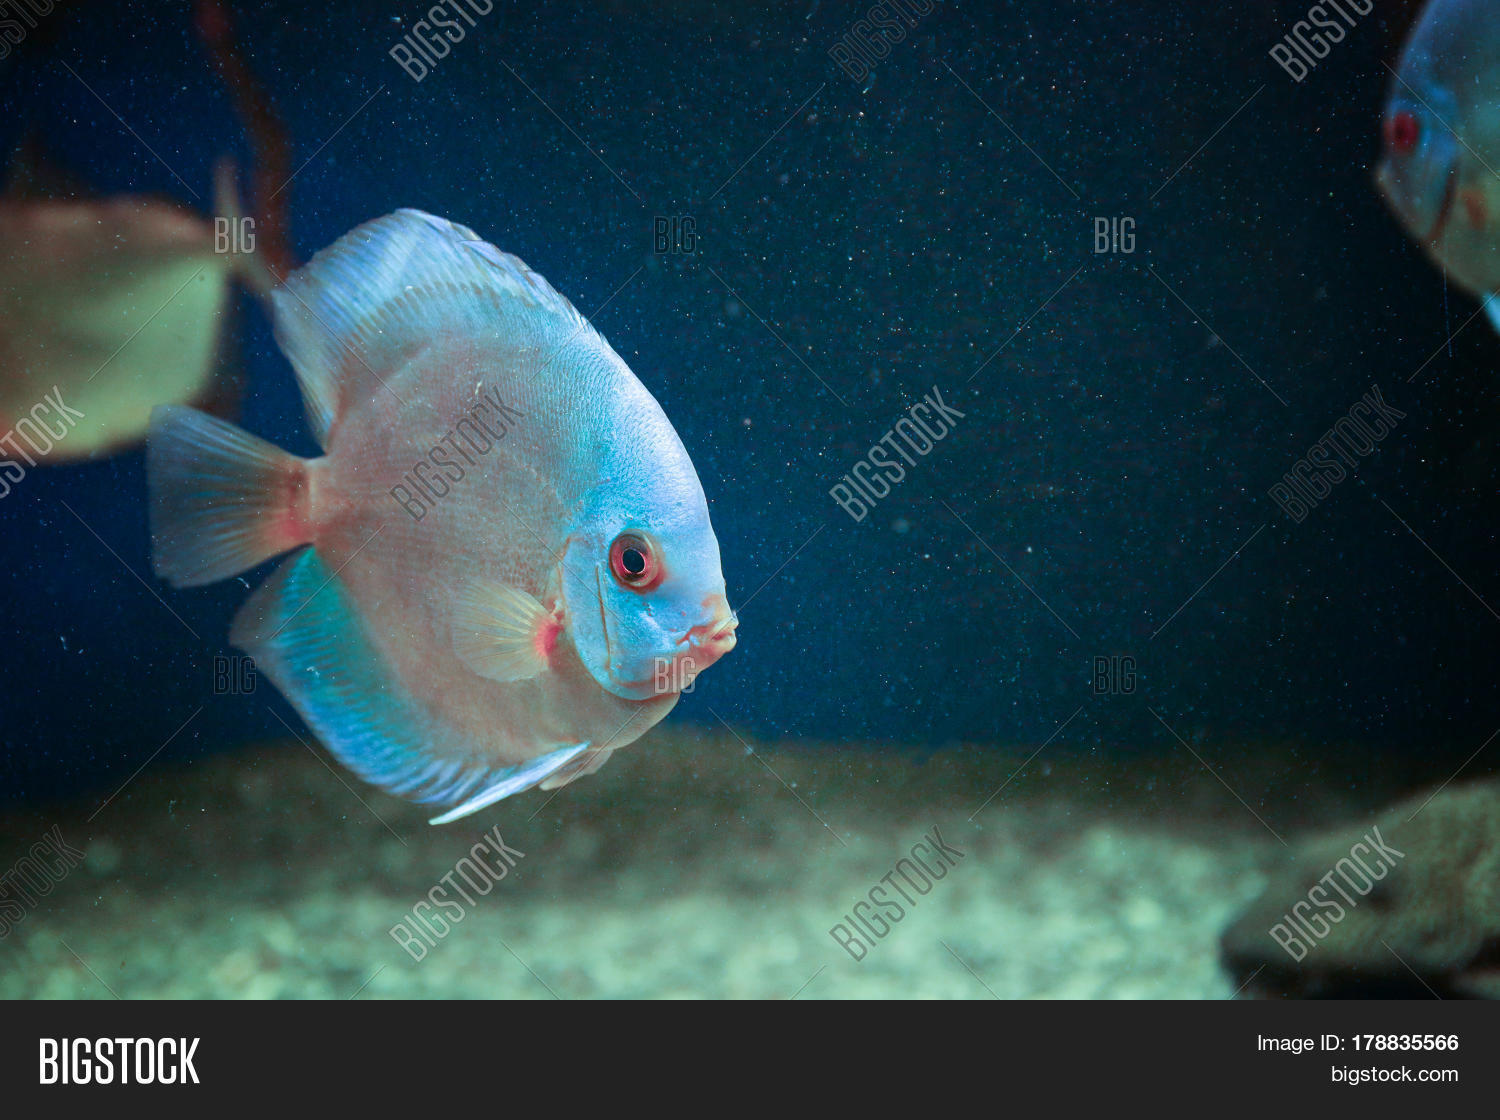 Exotic freshwater fish in aquarium stock photo stock for Rare freshwater aquarium fish